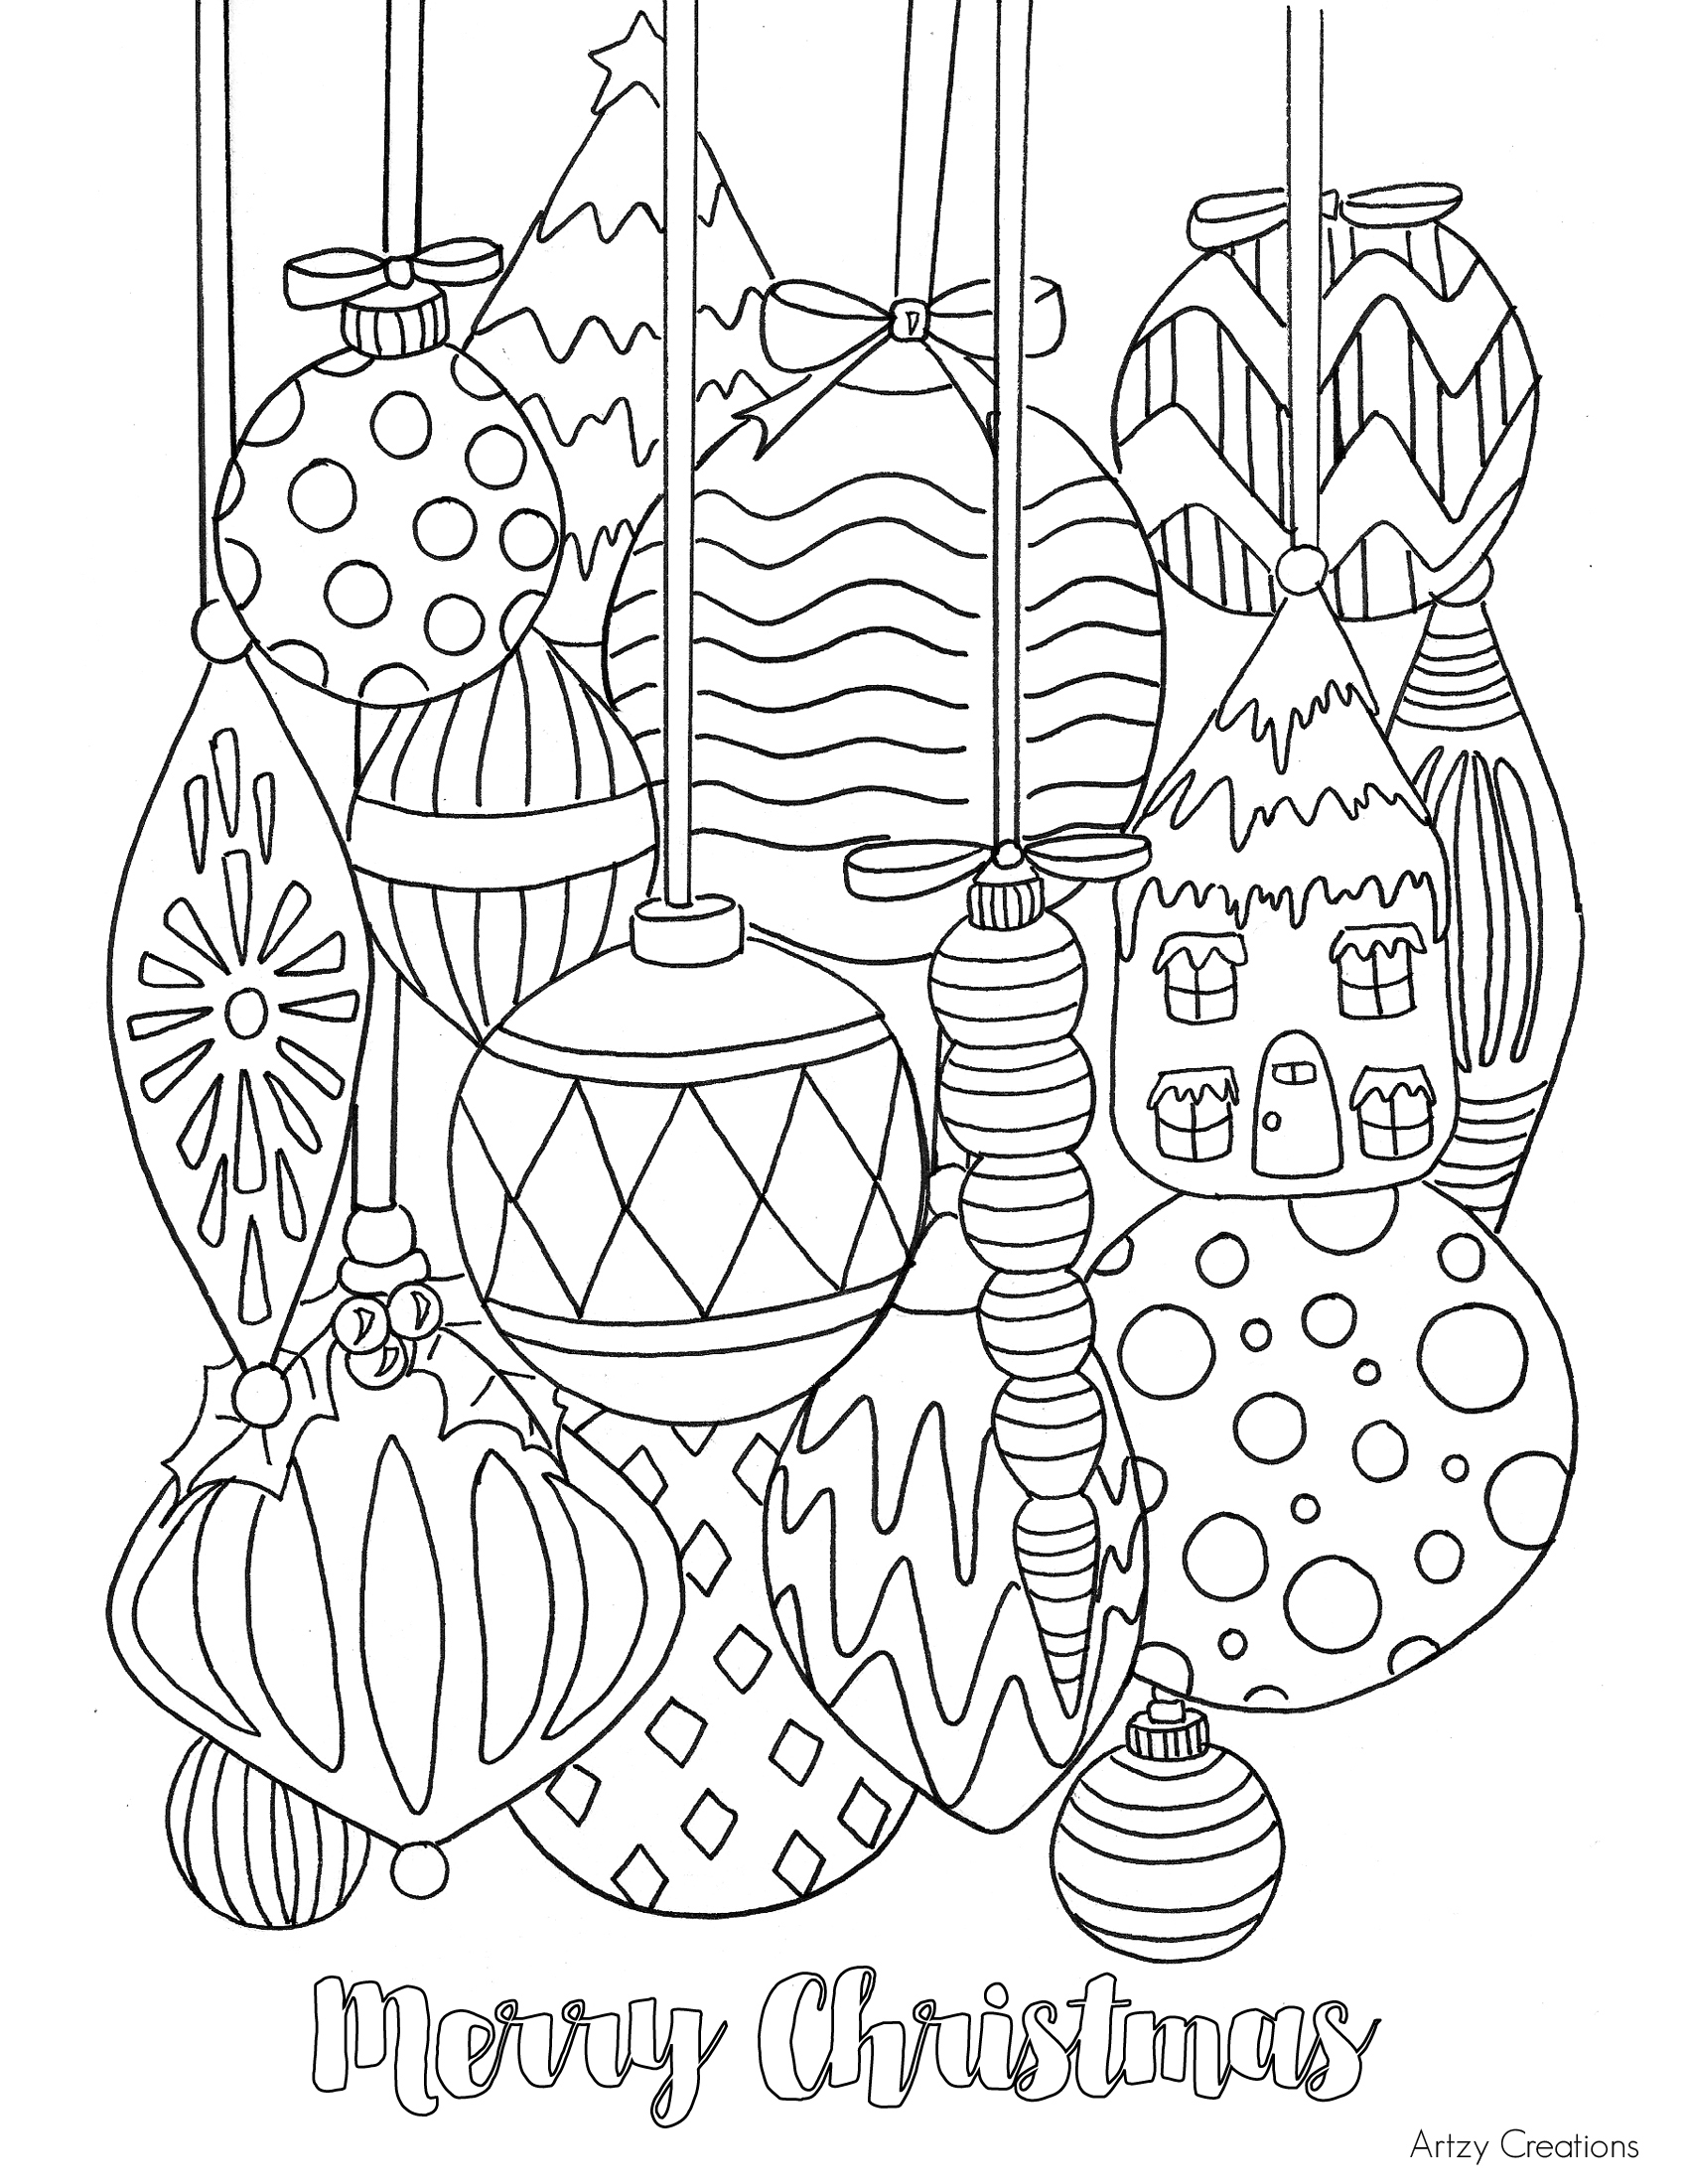 Christmas Coloring Pages For Adults Free Printable With Download